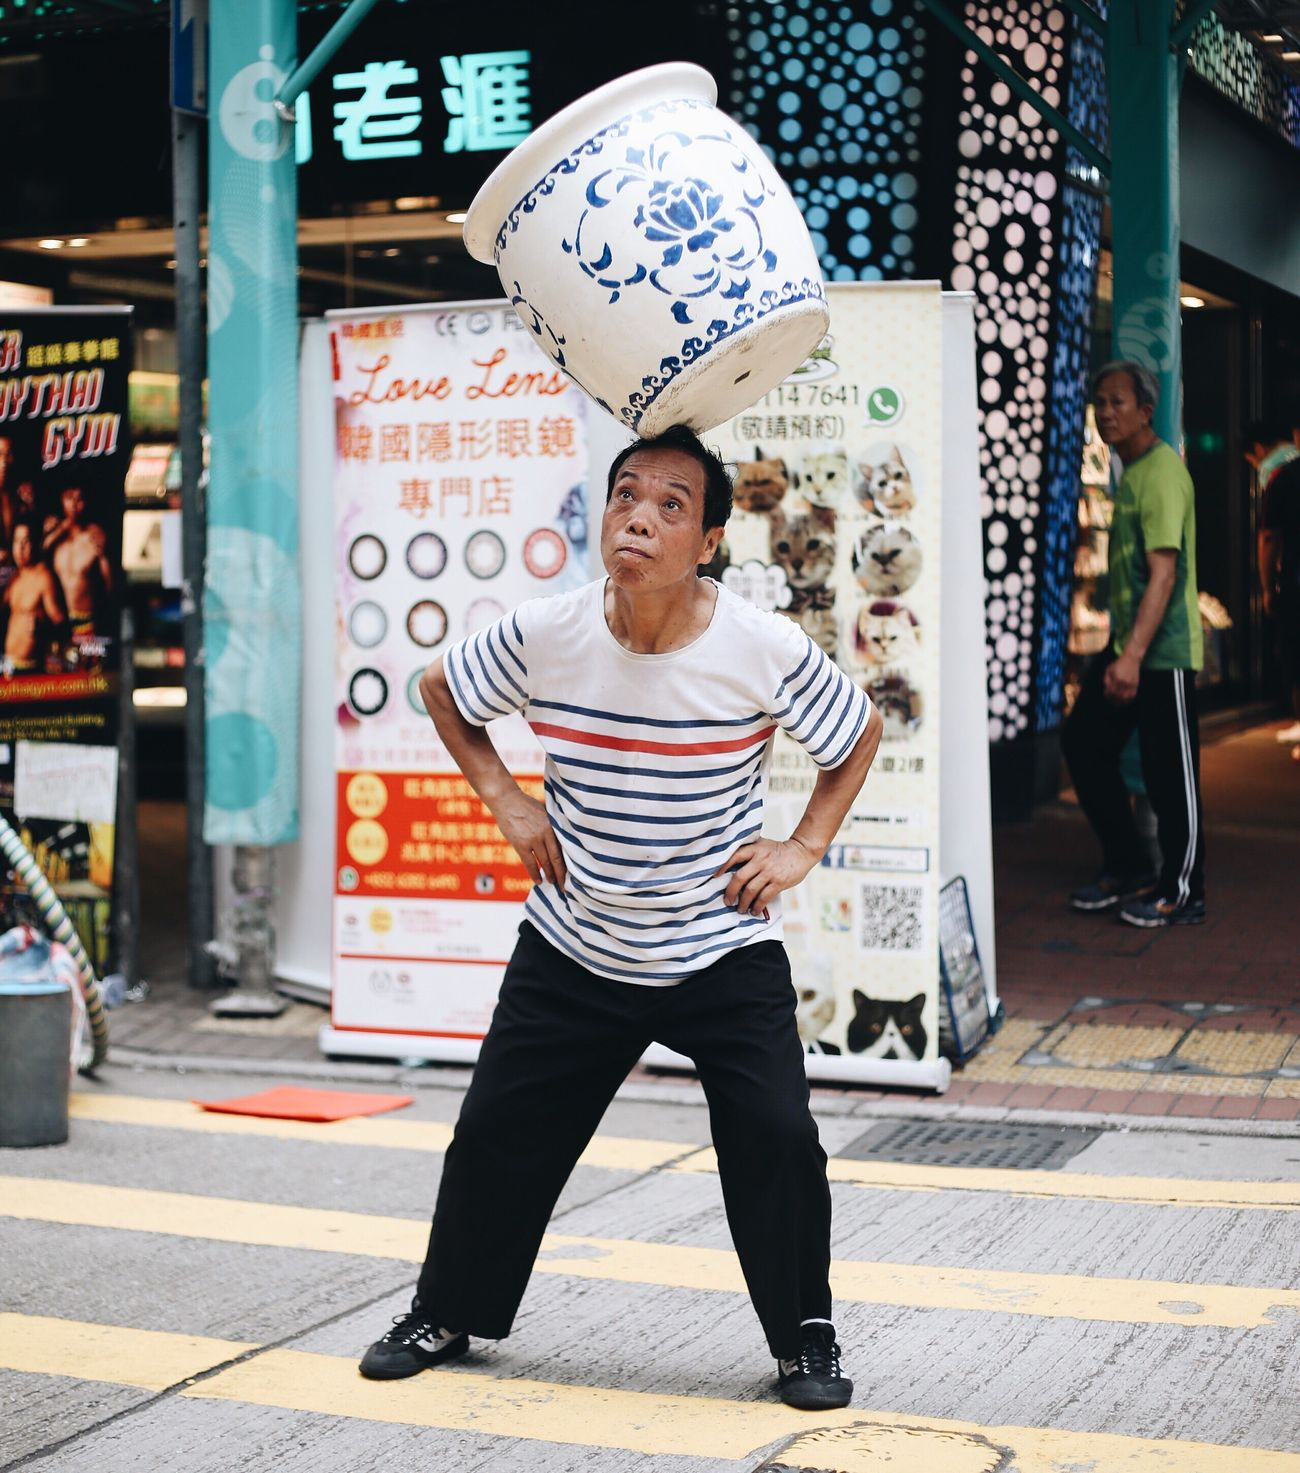 Feel The Journey HongKong Explorehongkong Streetphotography Streetperformer Chinese Art EyeEm X Canon - Feel The Journey